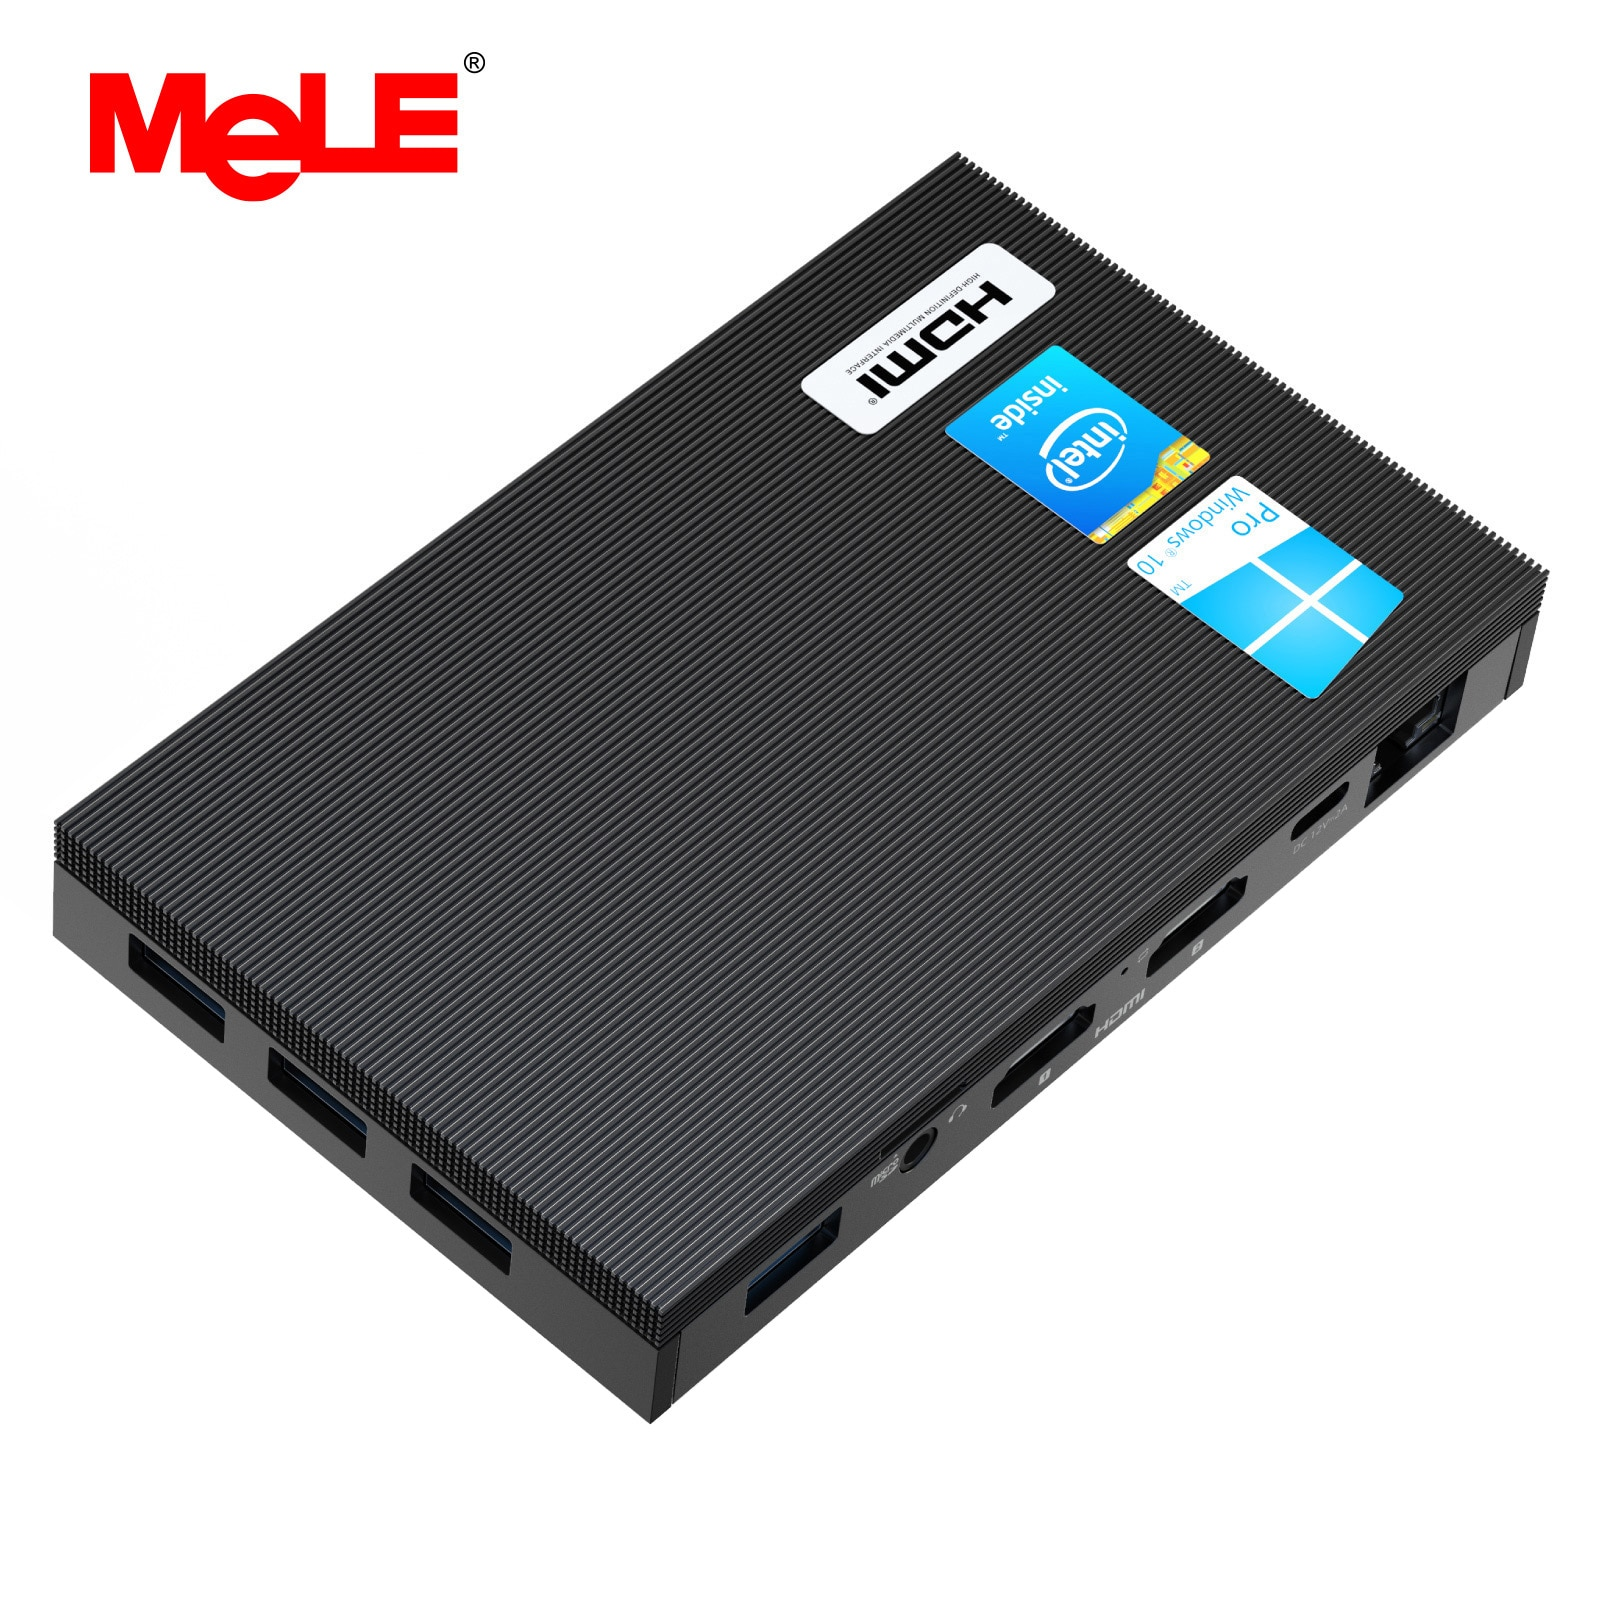 MeLE Fanless 4K Mini PC Intel Celeron J4125 Quad Core 8GB 128GB Windows 10 Desktop Computer Dual HDM